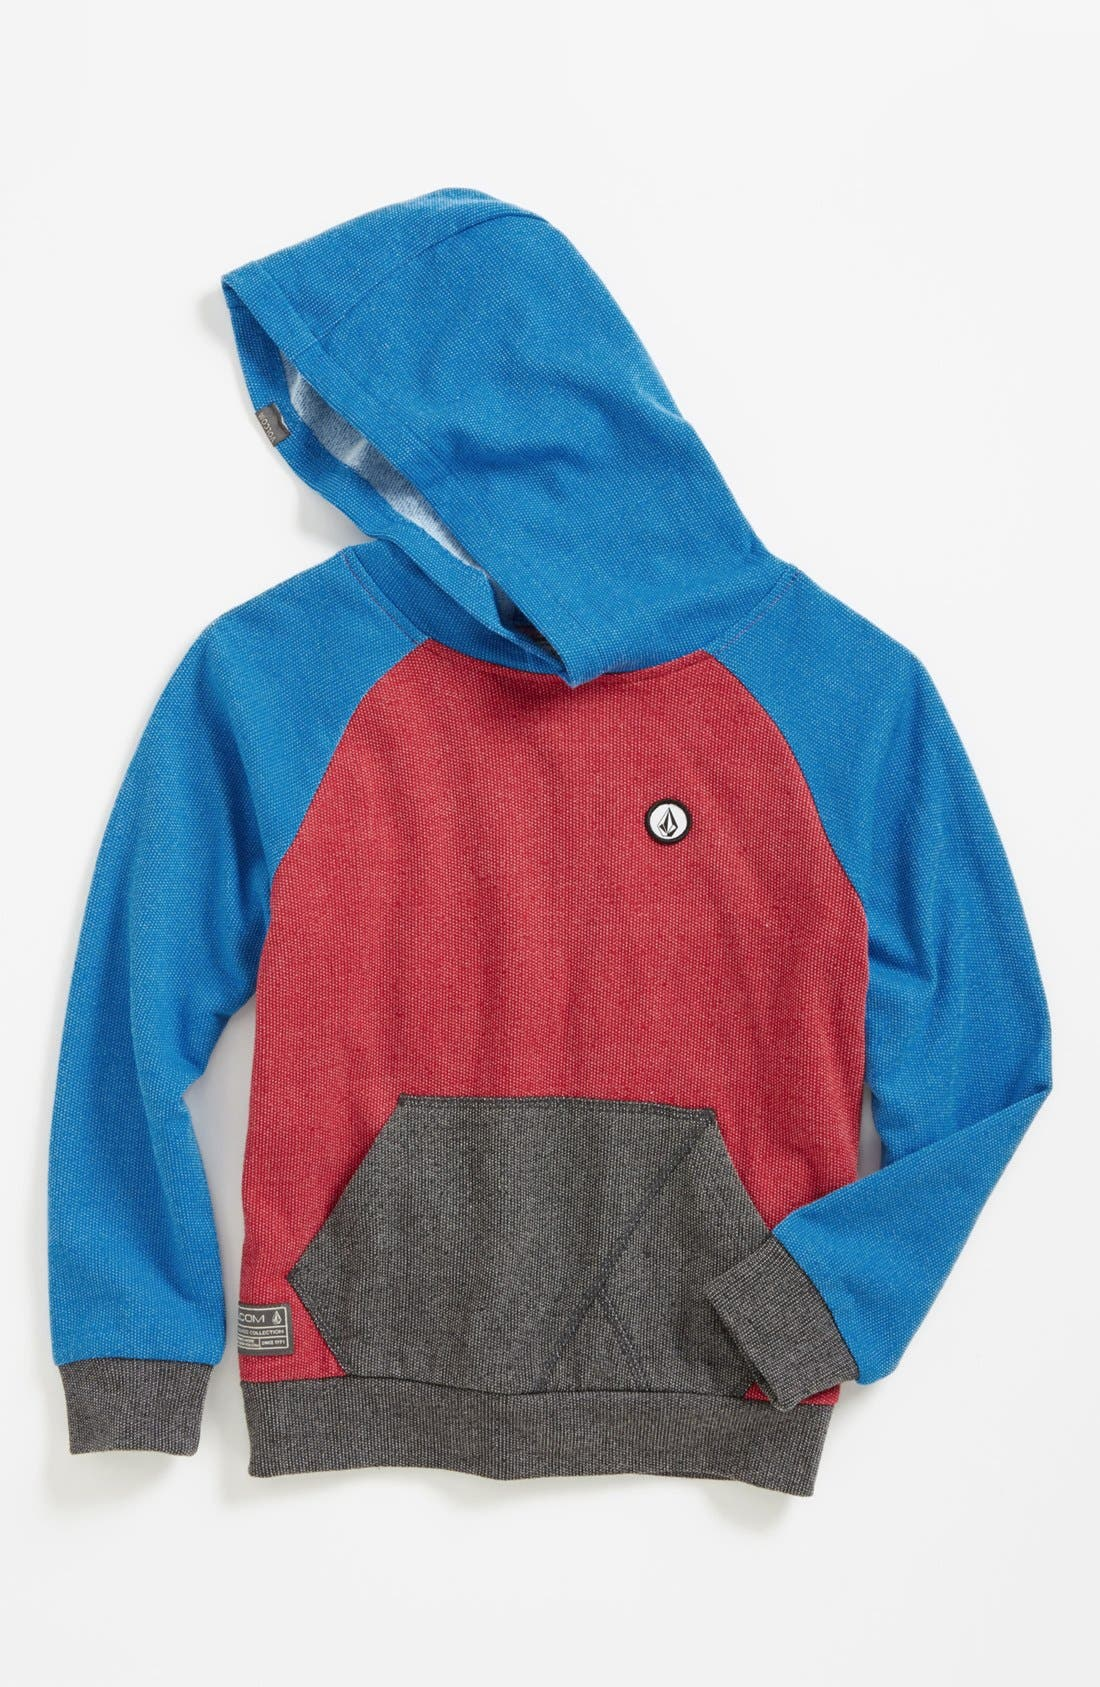 Alternate Image 1 Selected - Volcom 'Stone' Colorblock Pullover Hoodie (Toddler Boys)